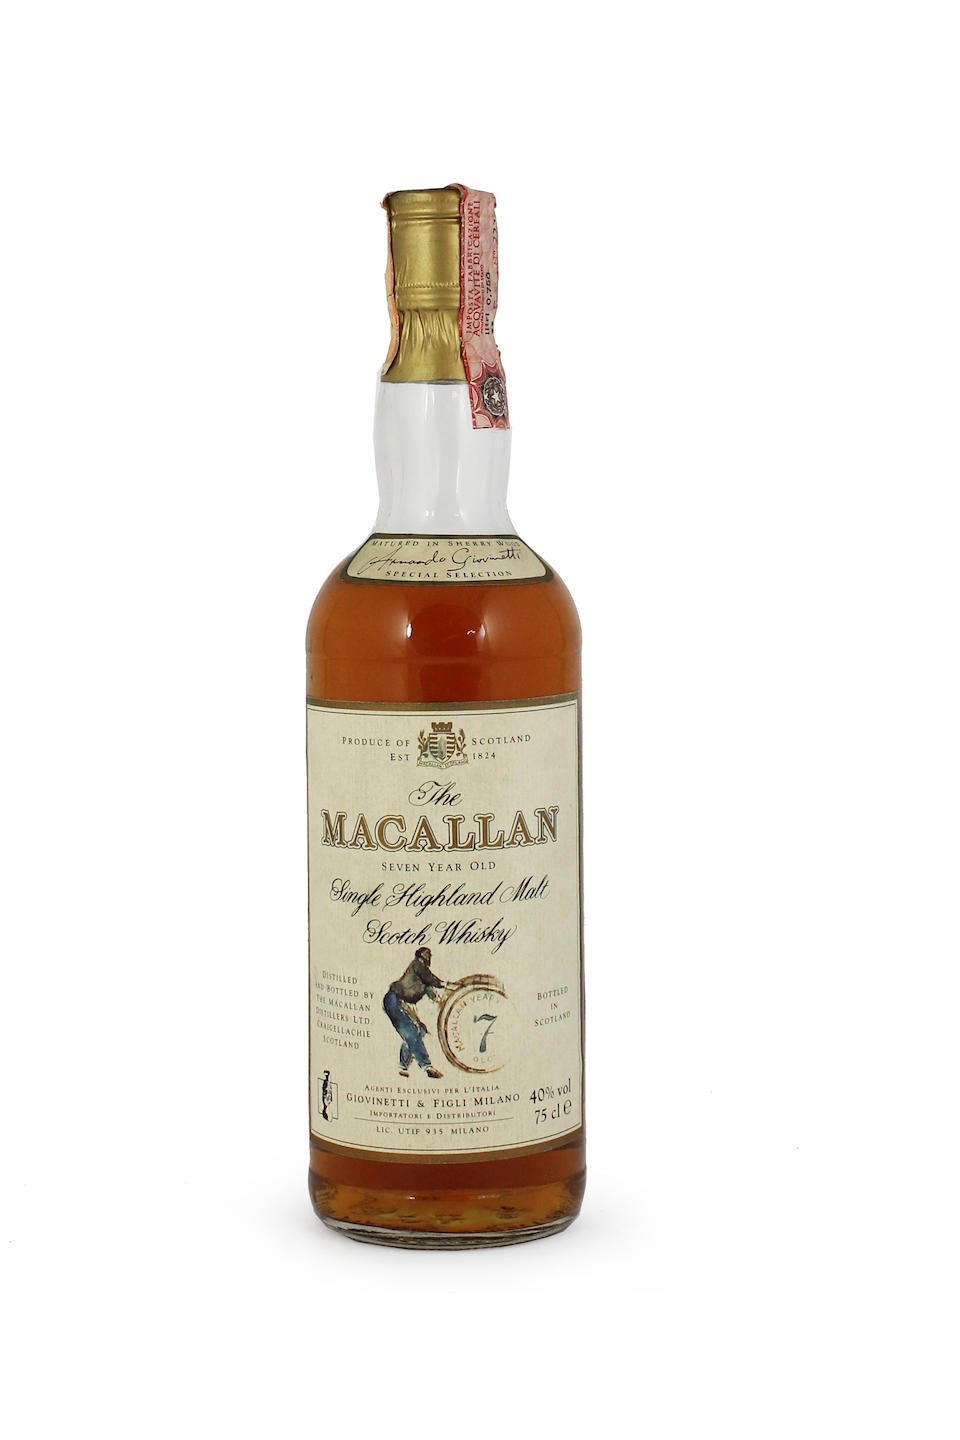 The Macallan-7 year old The Macallan-7 year old (6)